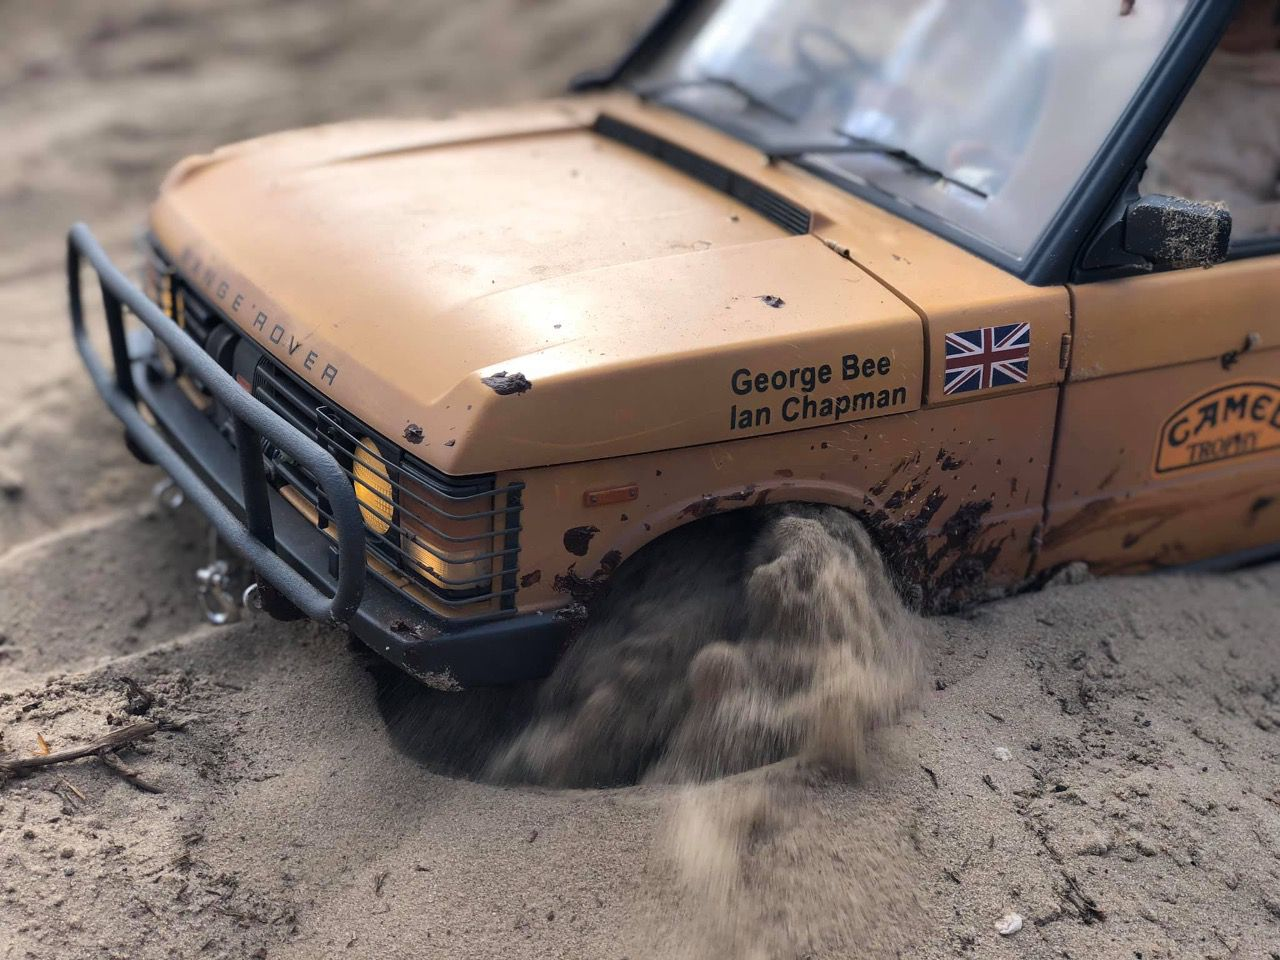 87CTkit - 1987 Camel Trophy kit (5 door Range Rover)